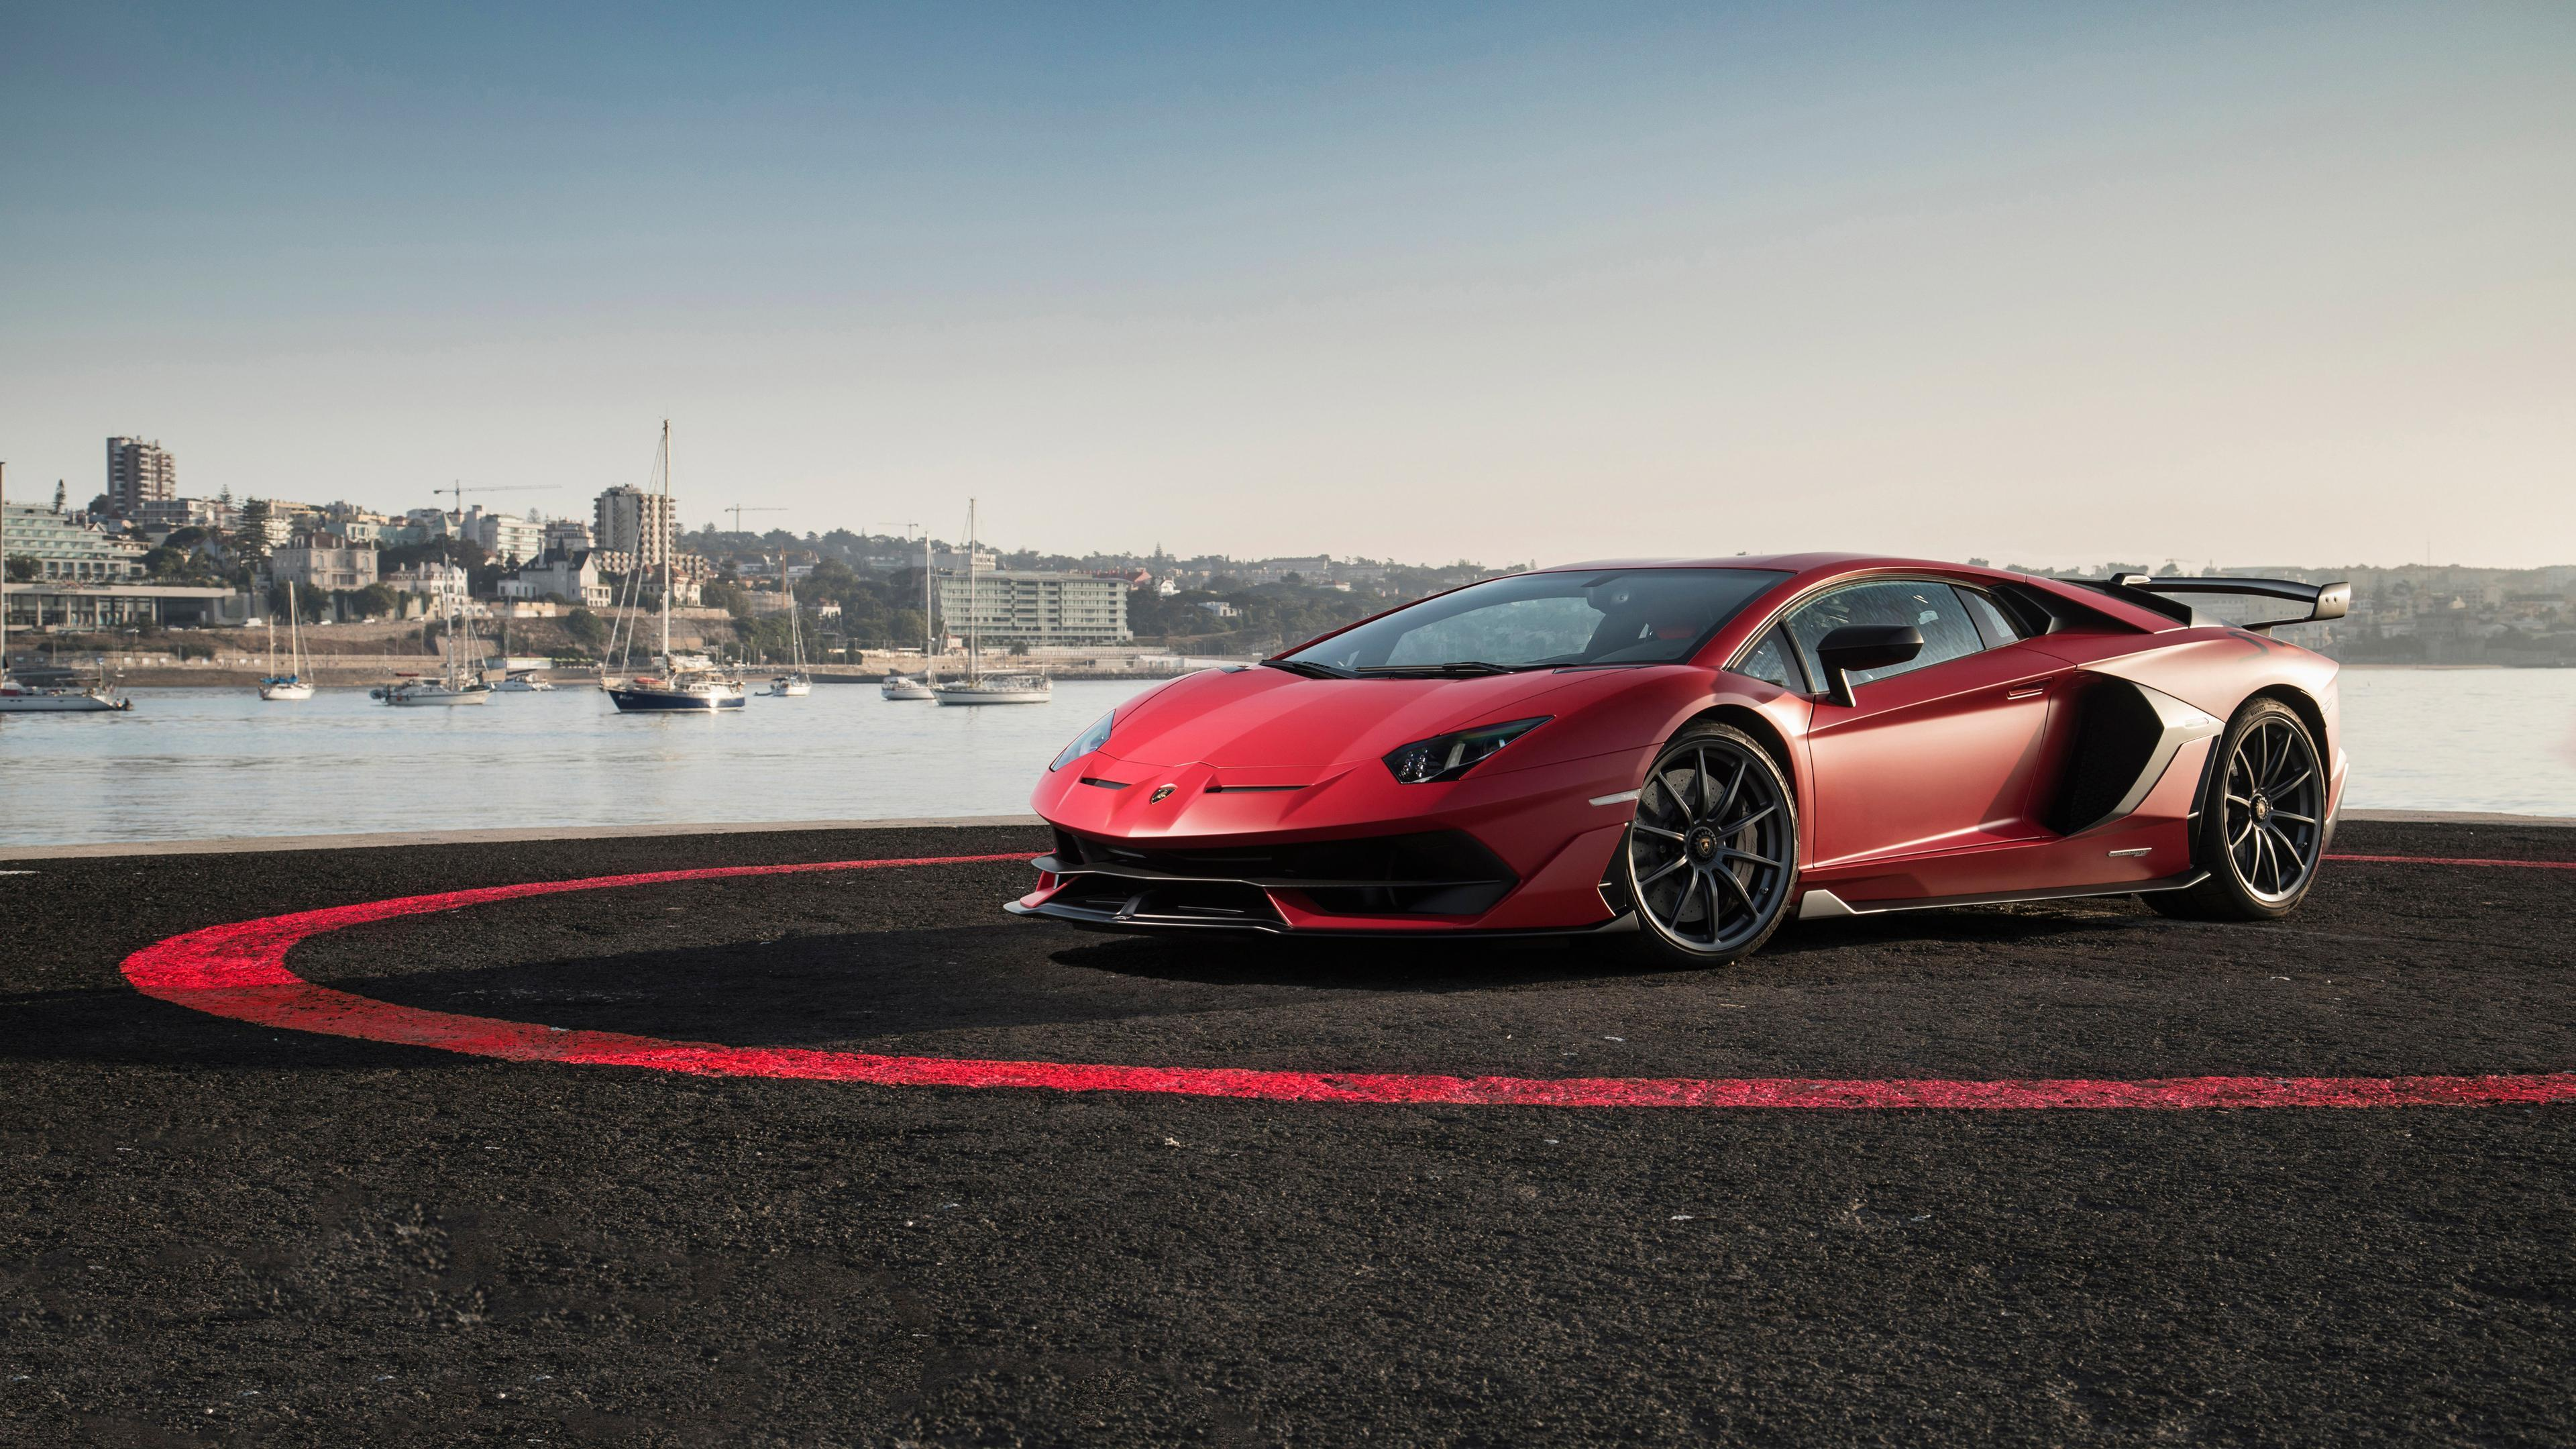 Lamborghini Aventador Svj Wallpapers Wallpaper Cave